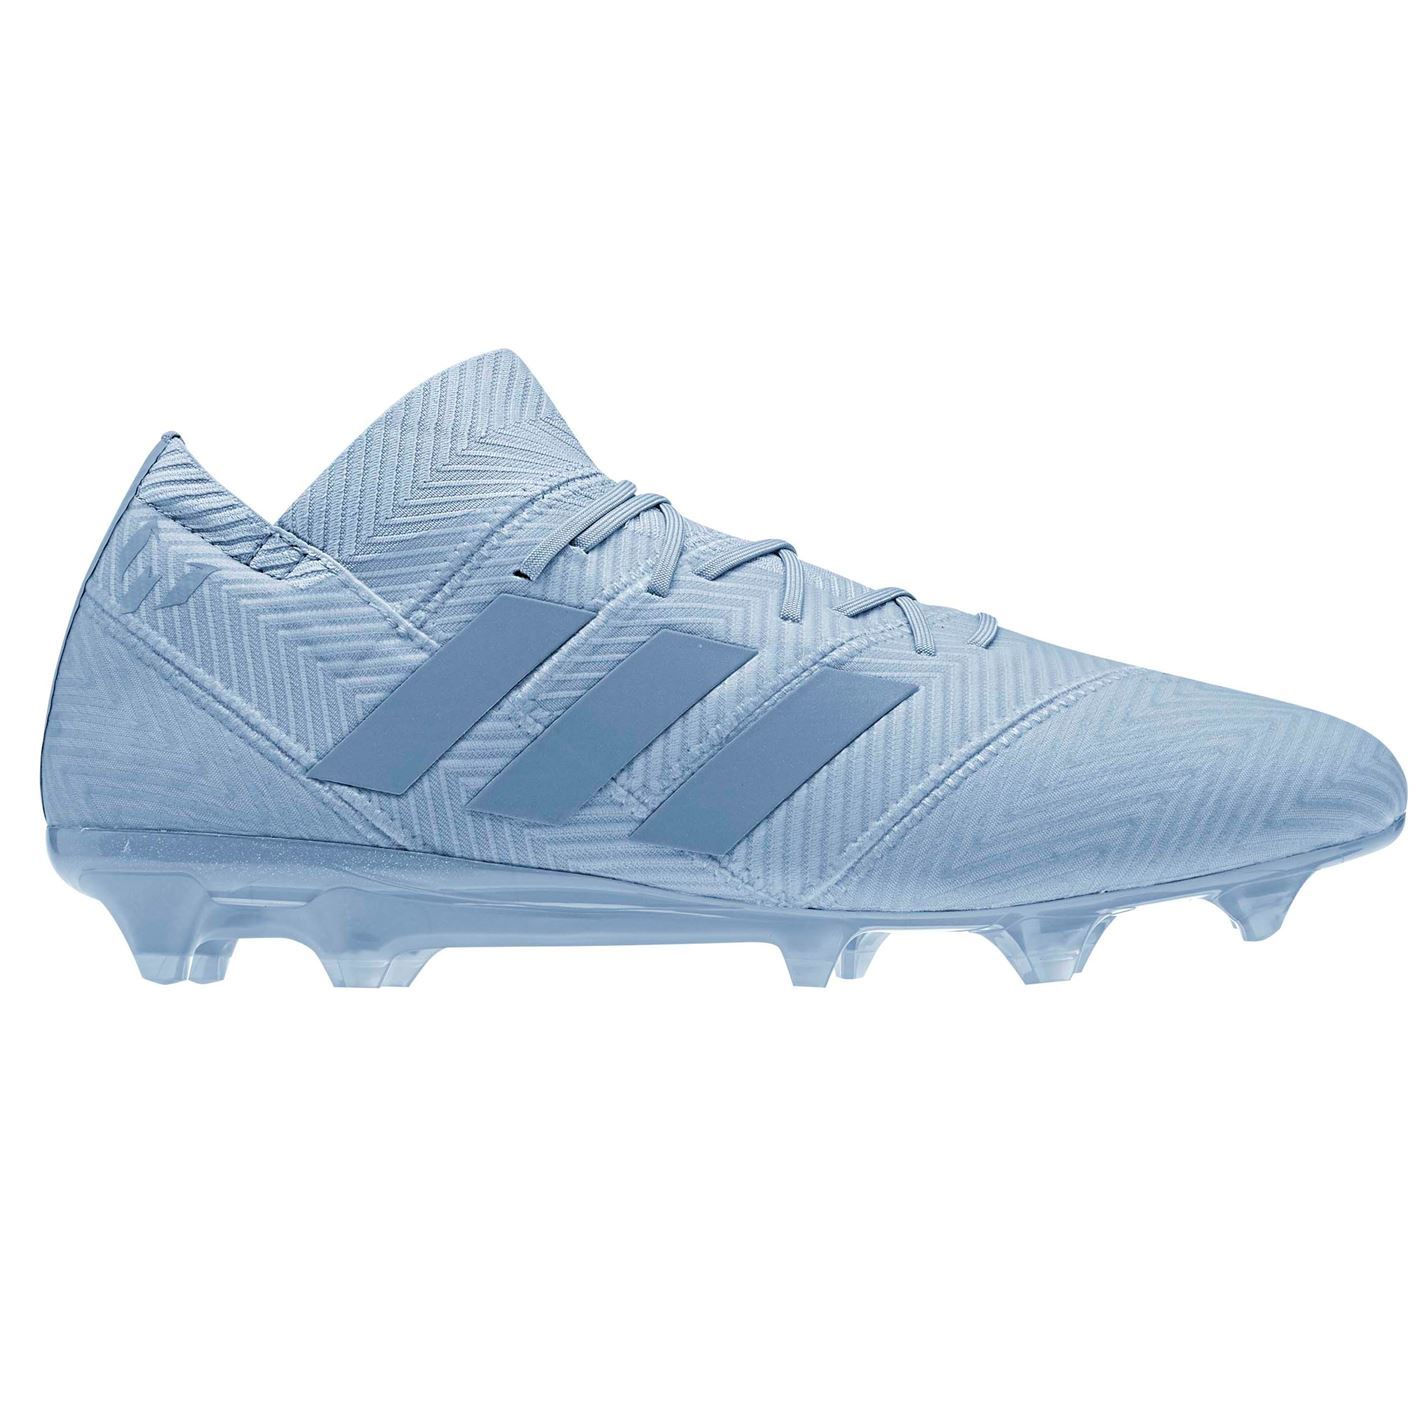 ac52bdbf ... adidas Nemeziz Messi 18.1 FG Firm Ground Football Boots Mens Soccer  Shoes Cleats ...